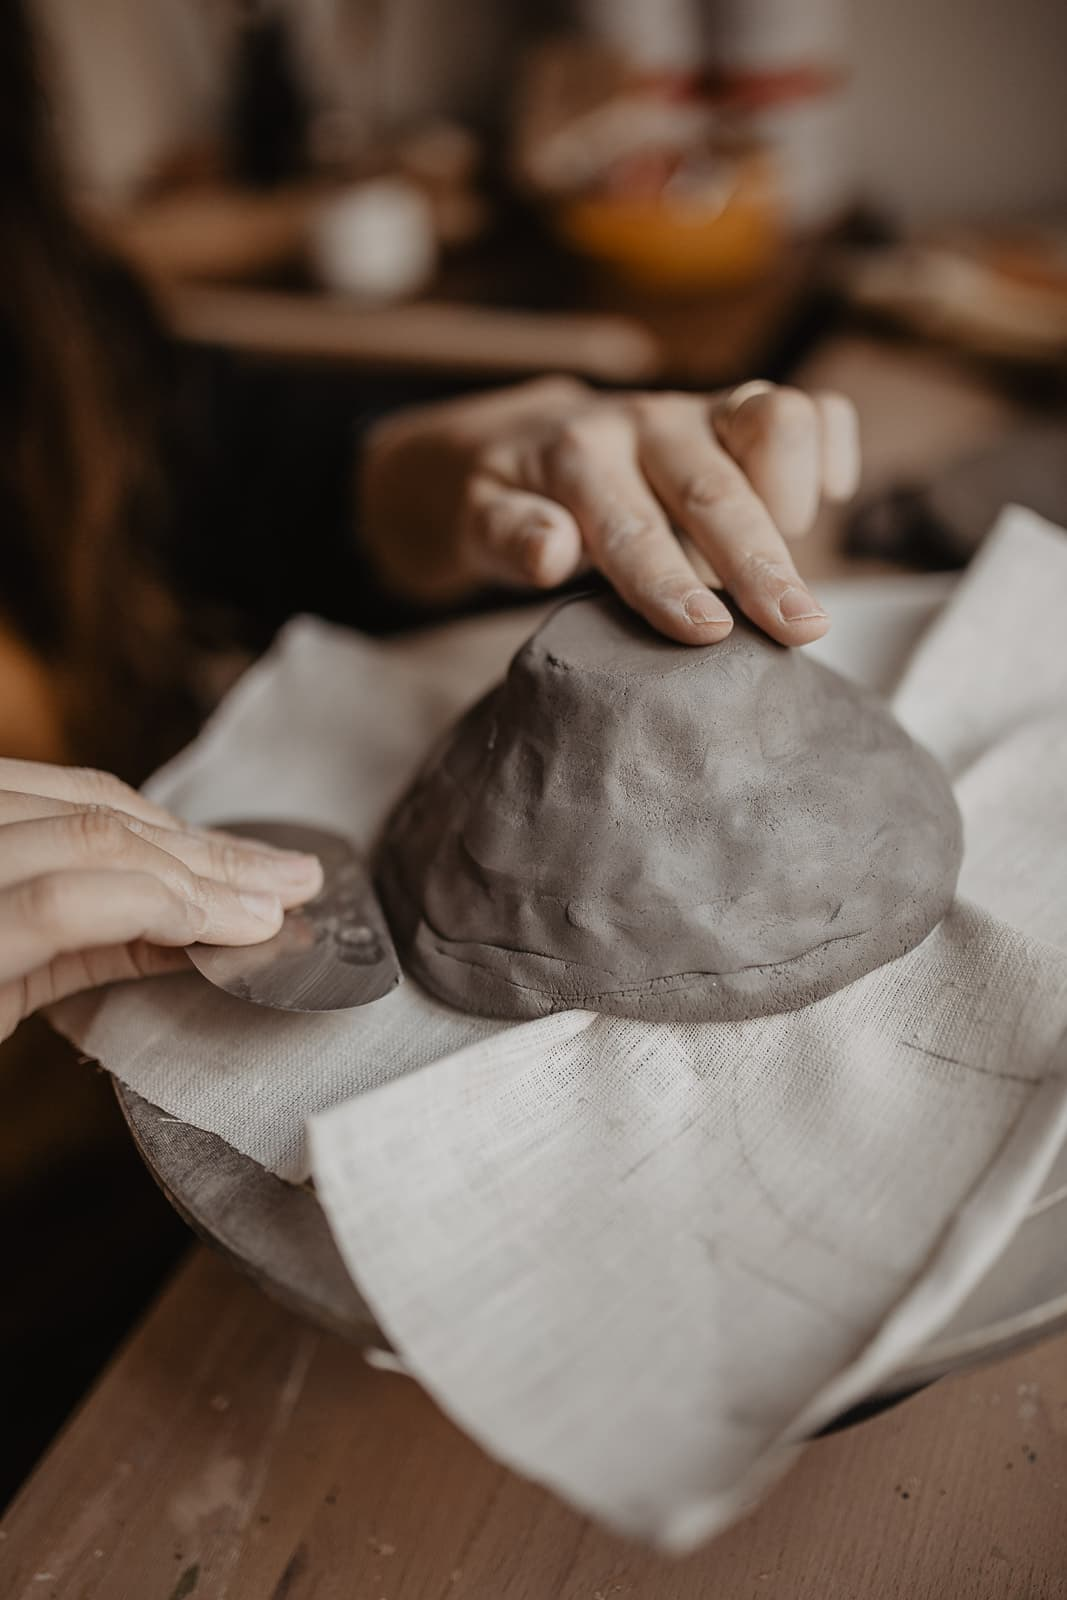 Making pottery from home